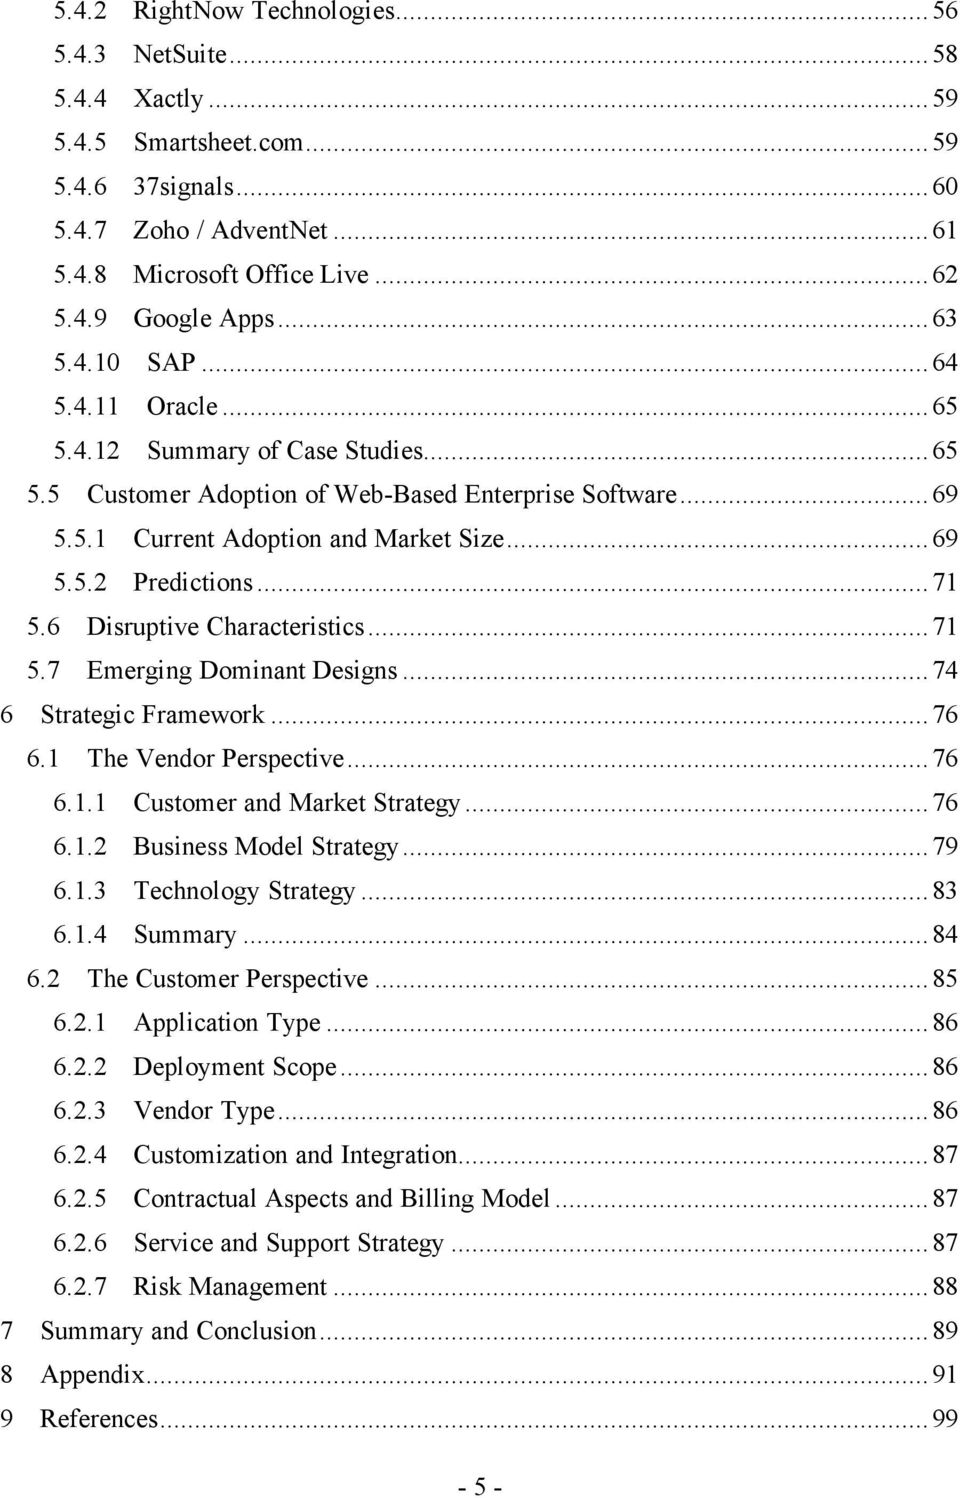 .. 71 5.6 Disruptive Characteristics... 71 5.7 Emerging Dominant Designs... 74 6 Strategic Framework... 76 6.1 The Vendor Perspective... 76 6.1.1 Customer and Market Strategy... 76 6.1.2 Business Model Strategy.